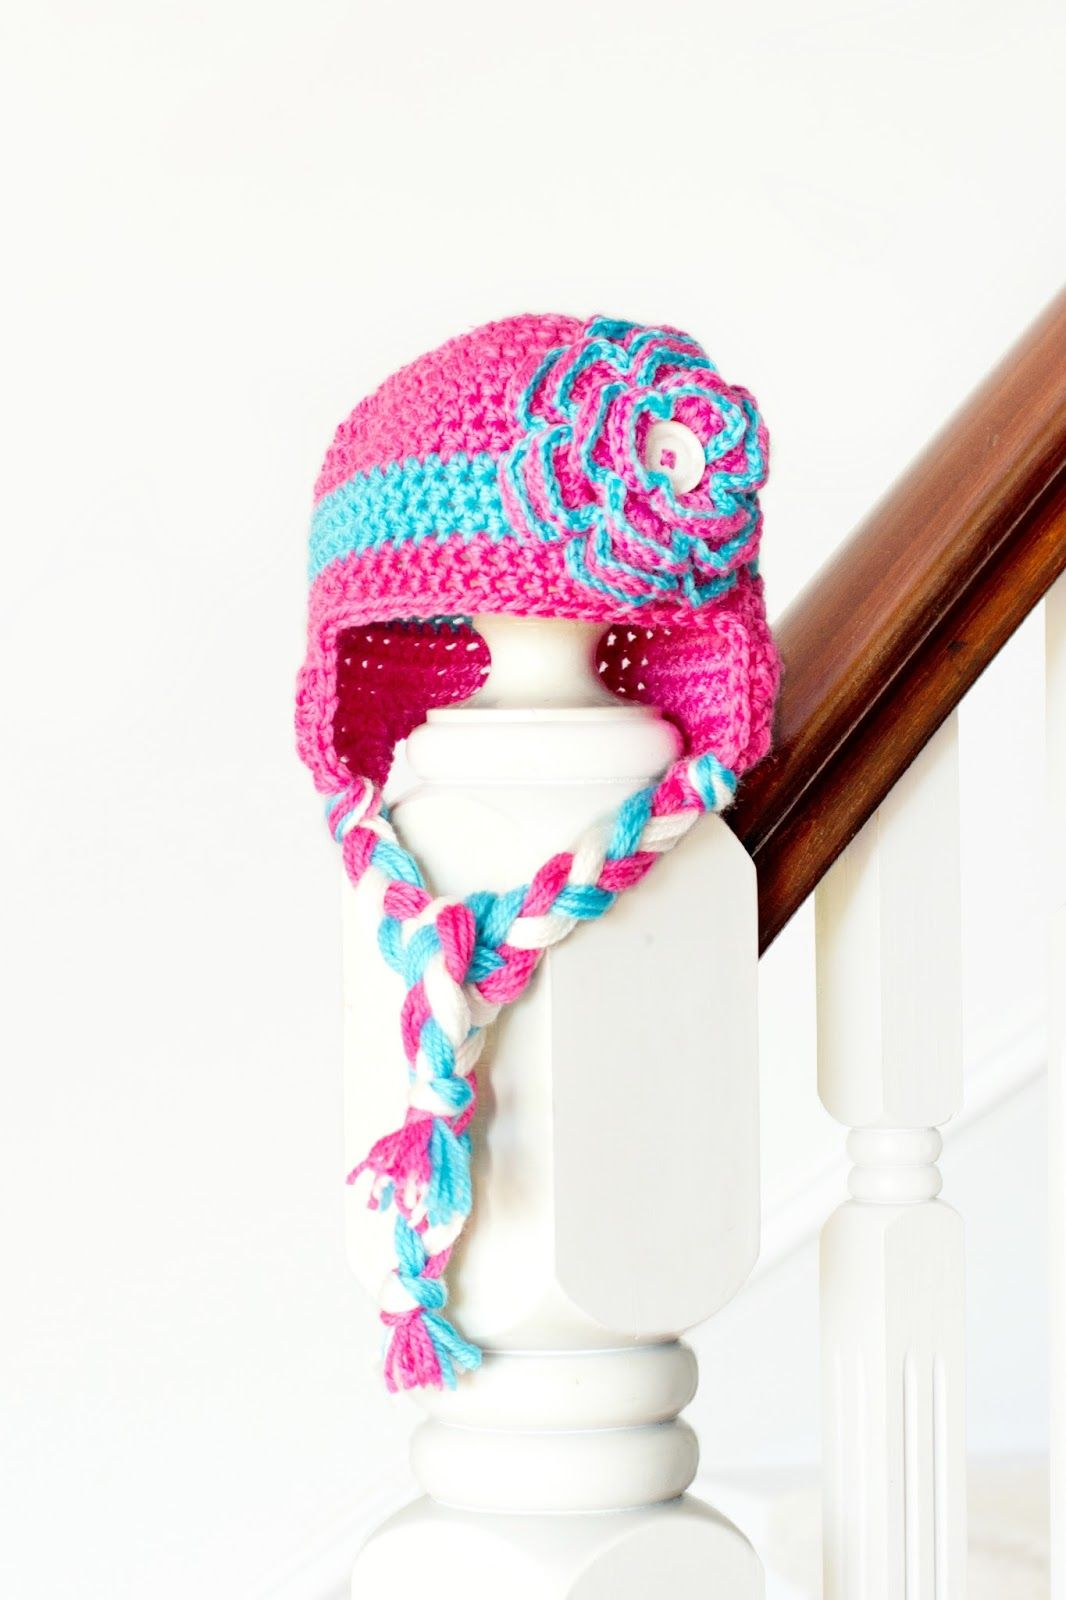 Crochet: Patterns, Articles, eBooks, Magazines, Videos | Sombreros ...